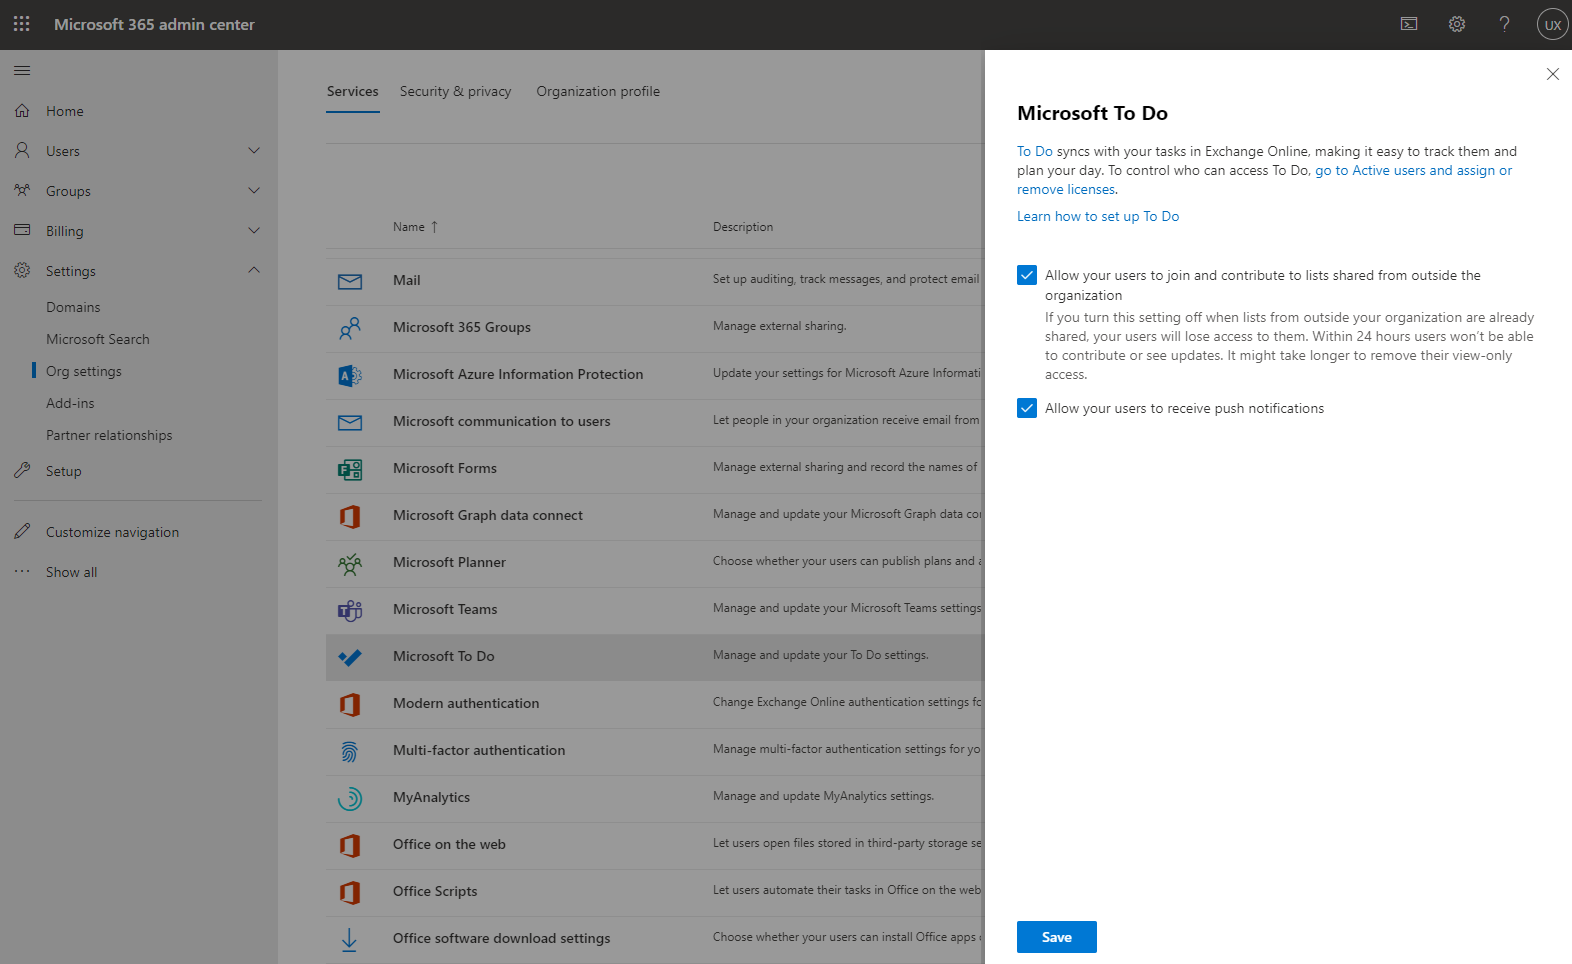 Microsoft To Do will soon support push notifications for work accounts OnMSFT.com September 24, 2020